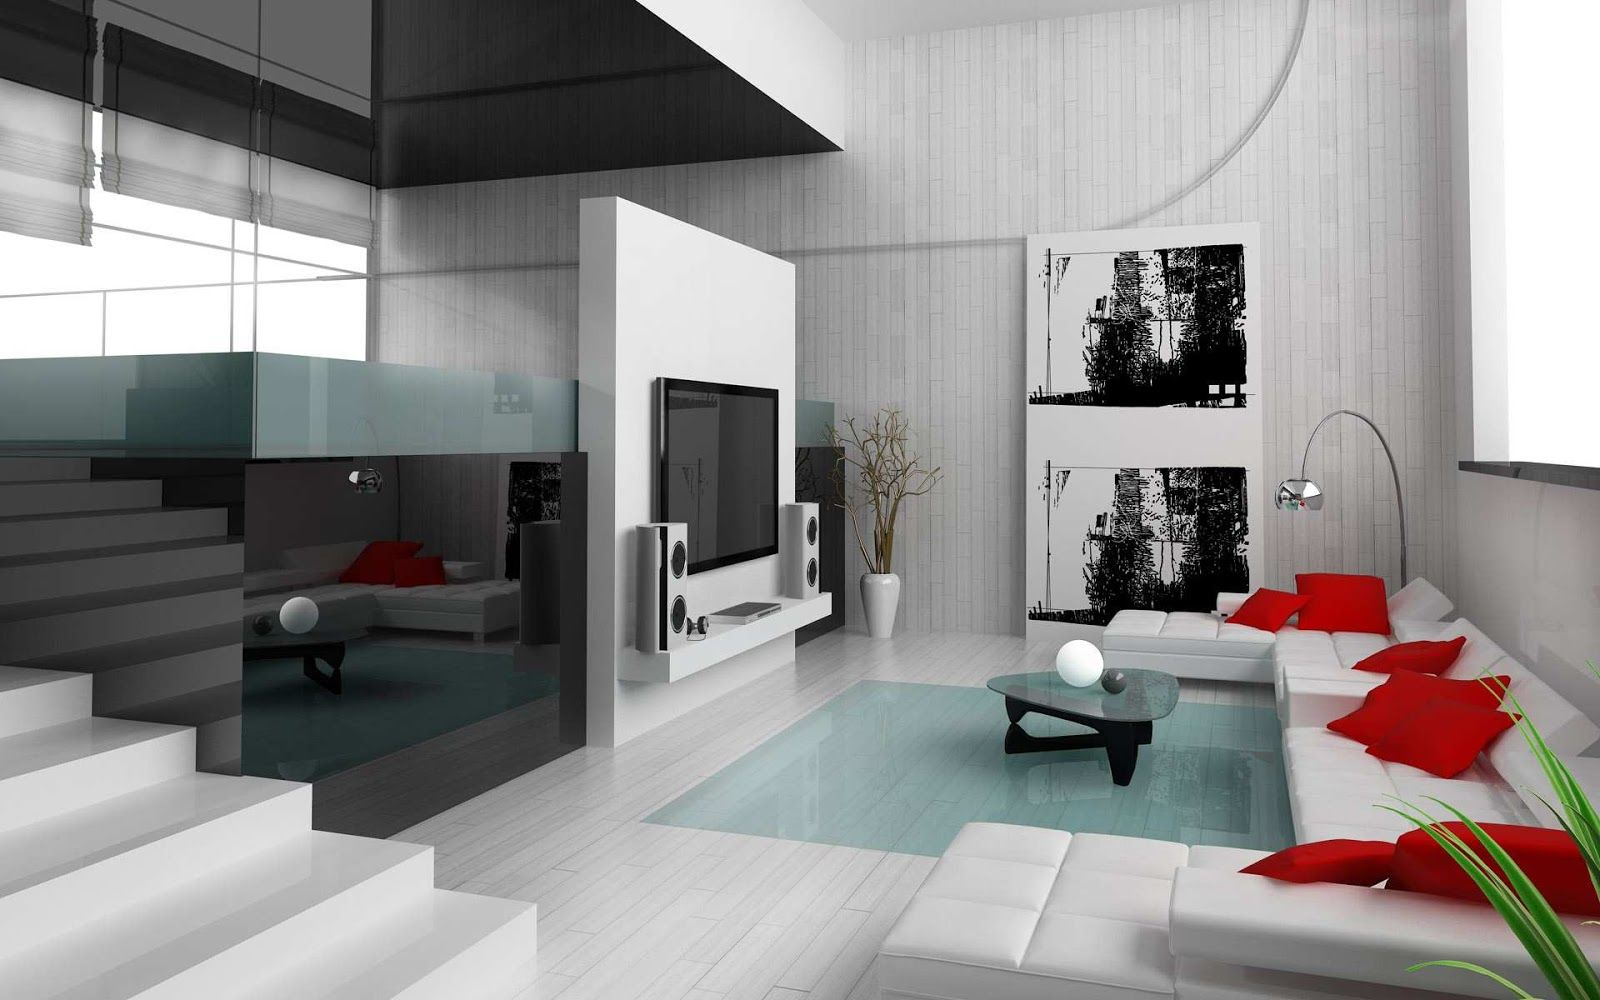 interior design ideas for your home - 1000+ images about Great Home Interior Design on Pinterest Home ...